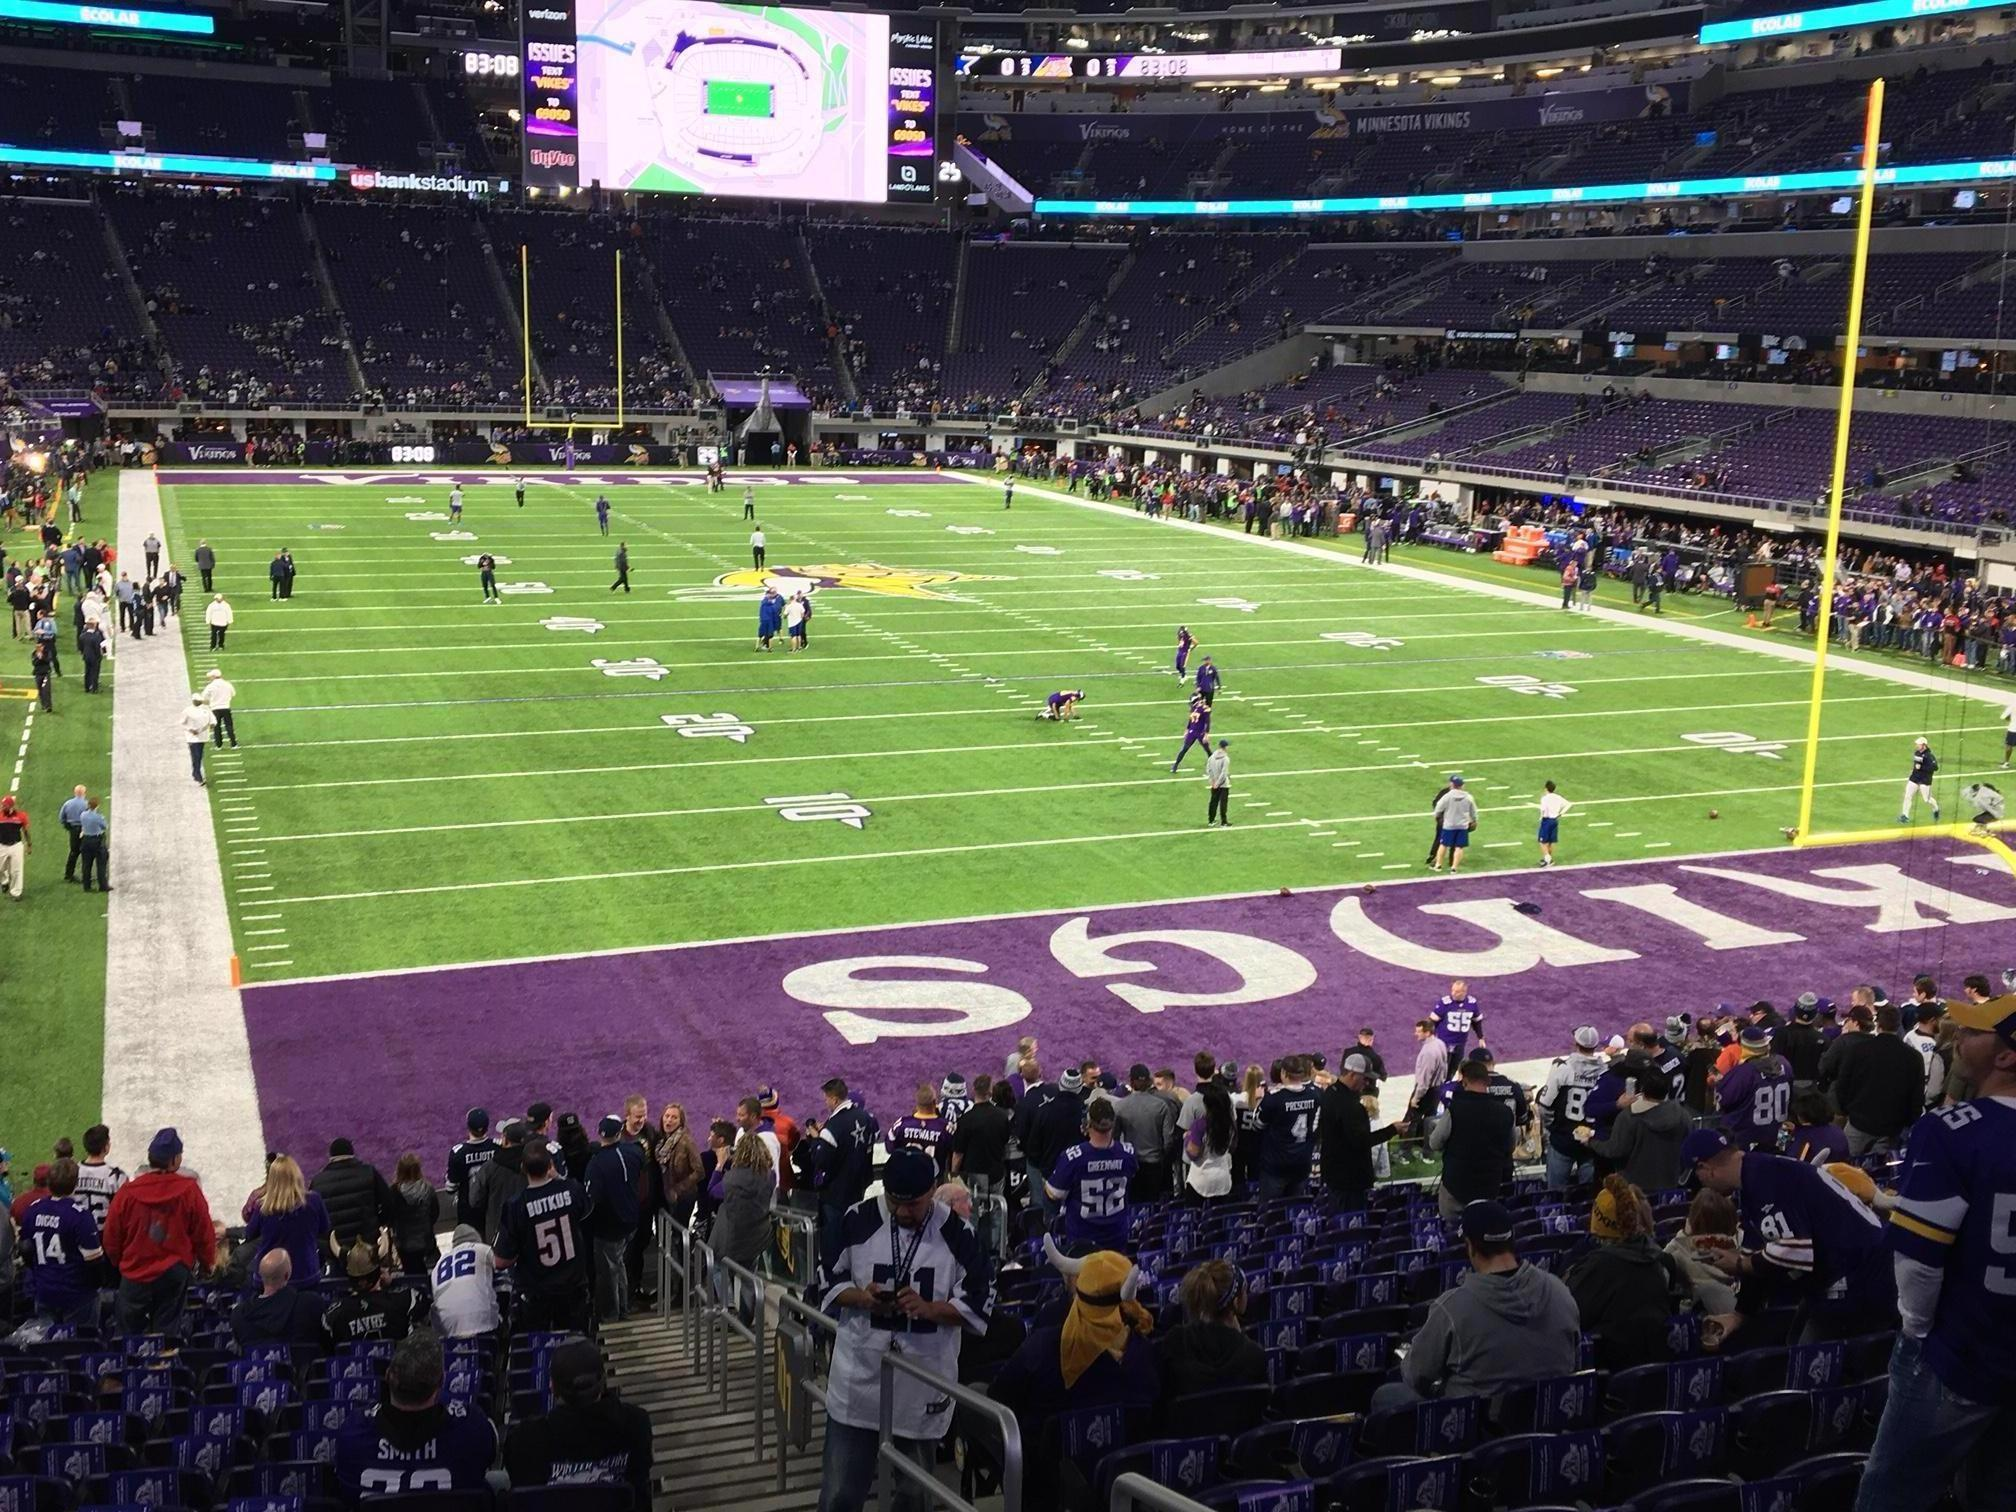 U.S. Bank Stadium Section 101 Row 21 Seat 1 and 2